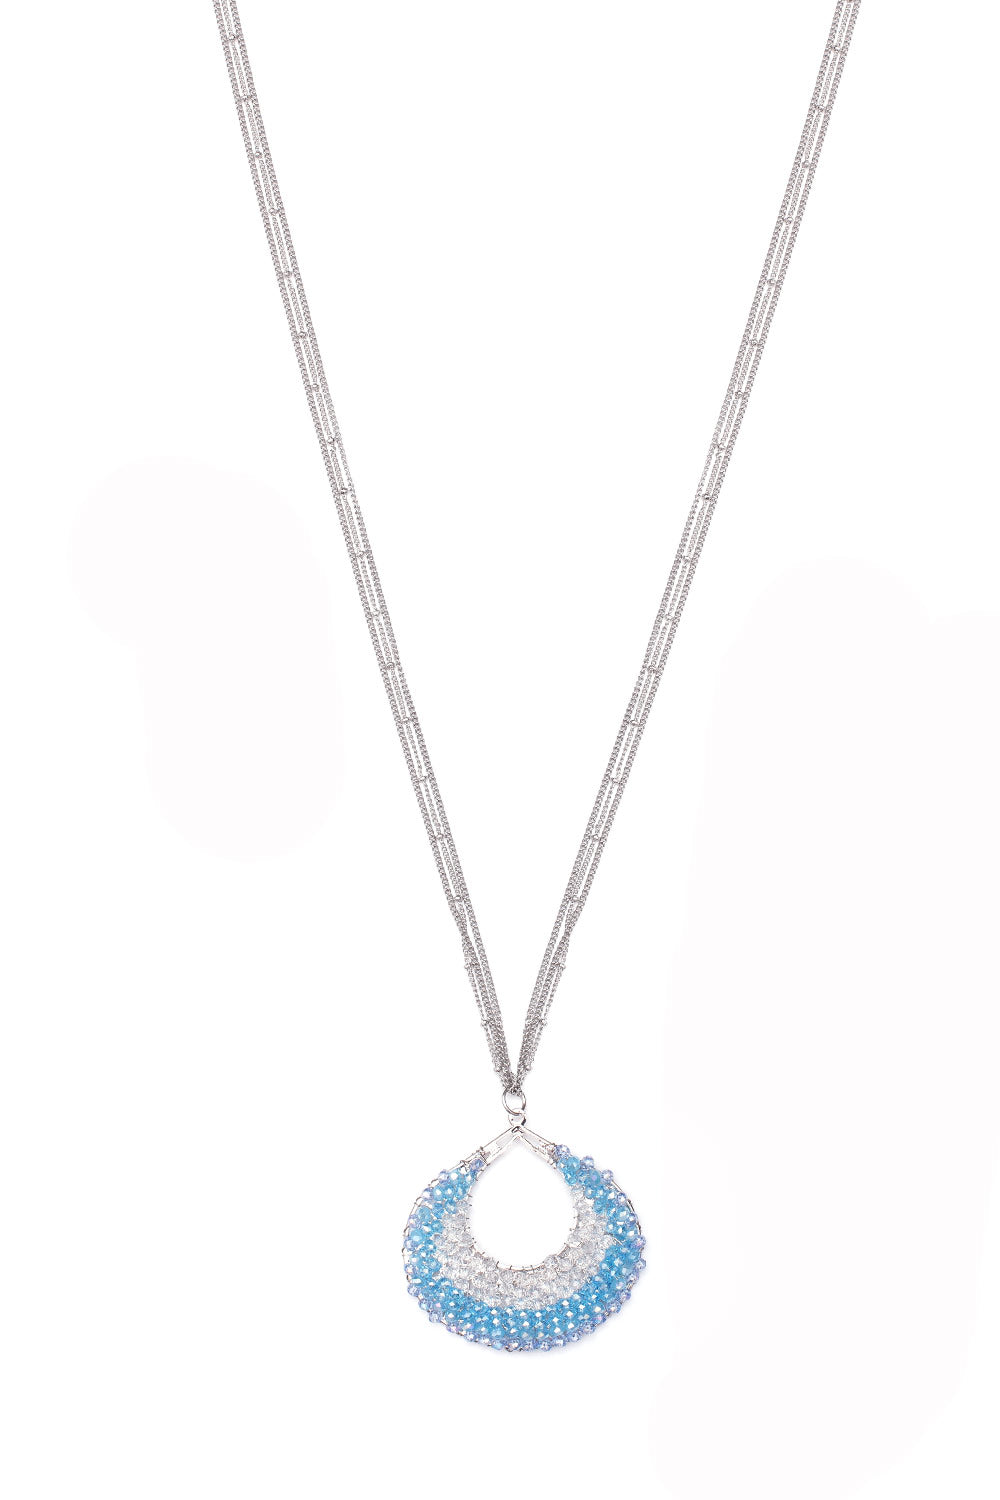 Type 2 Summer Sparkle Necklace